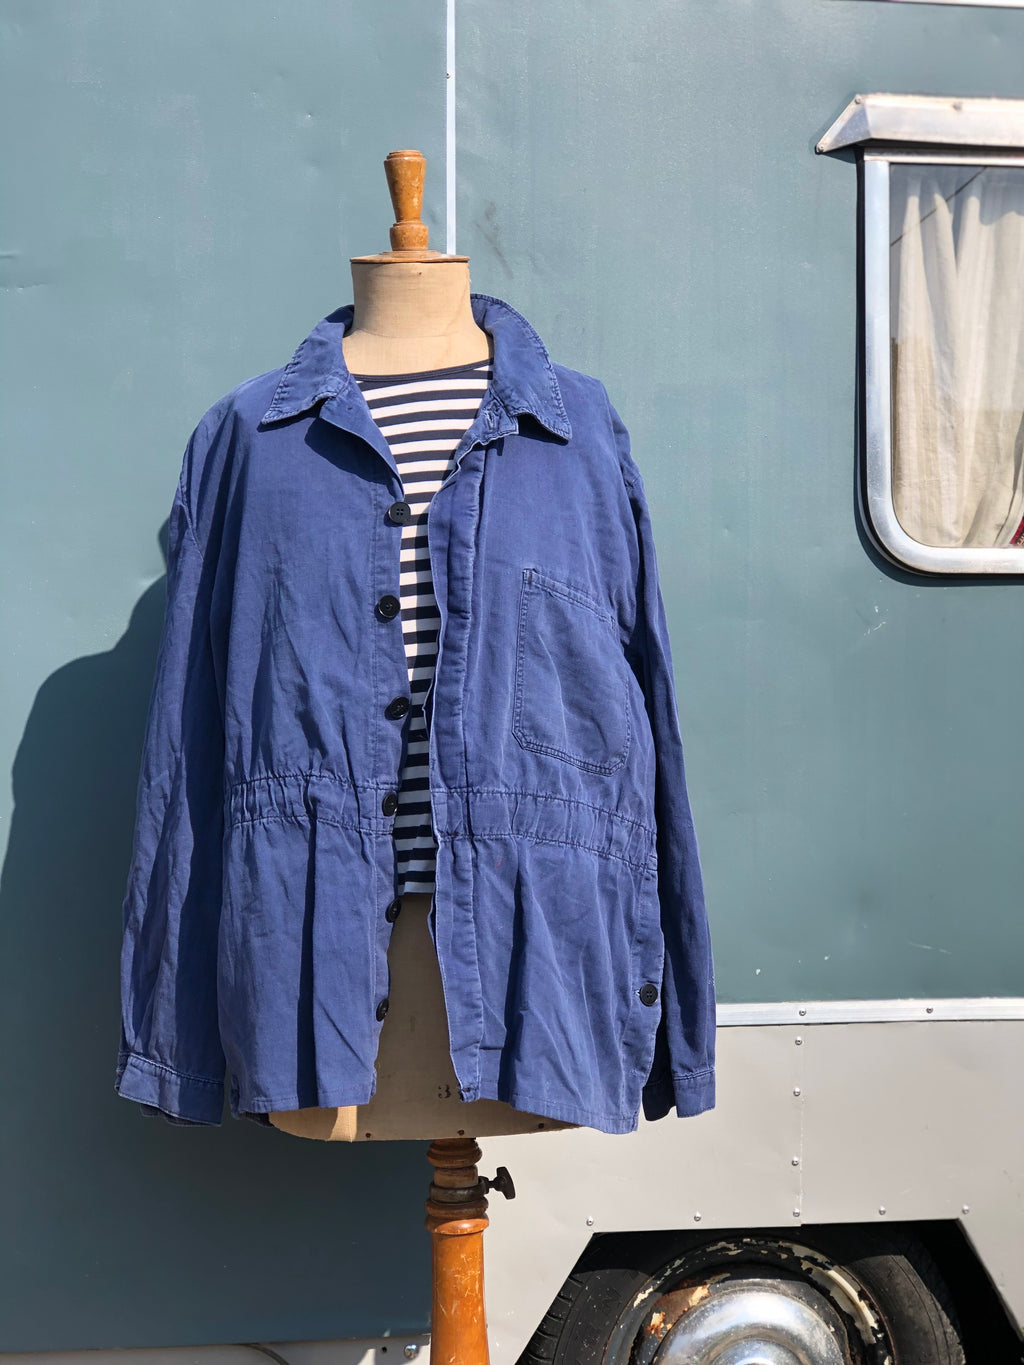 Vintage workwear jacket